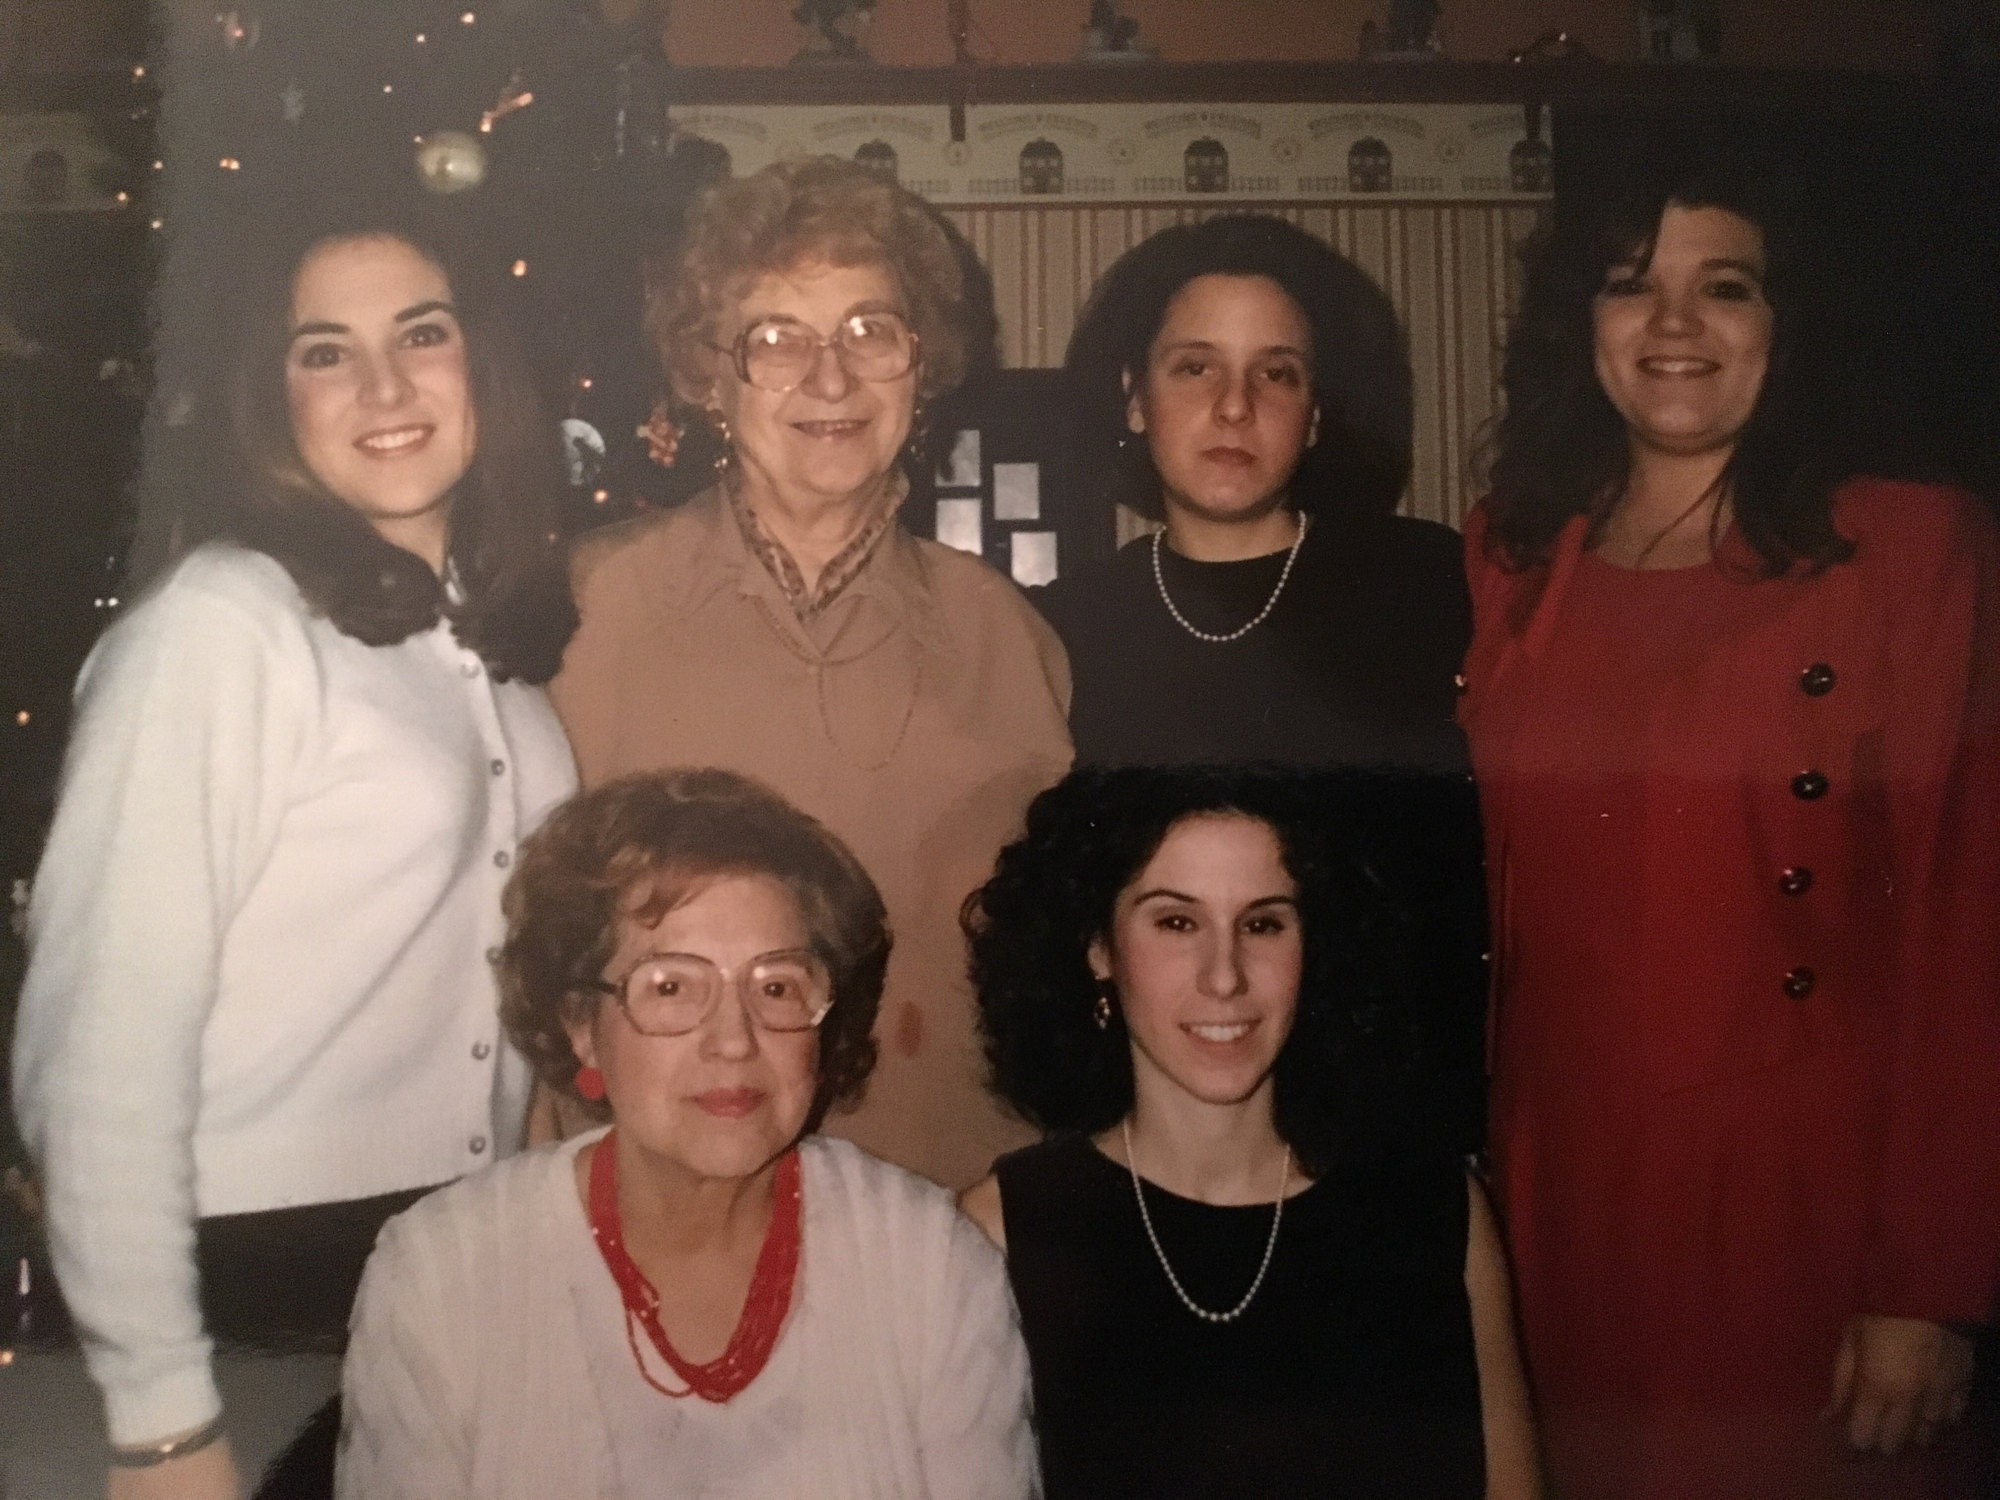 My Yaya and I are in the back row, closest to the left. This was taken on Christmas Day, 1996, four months before she passed away at the age of 77.